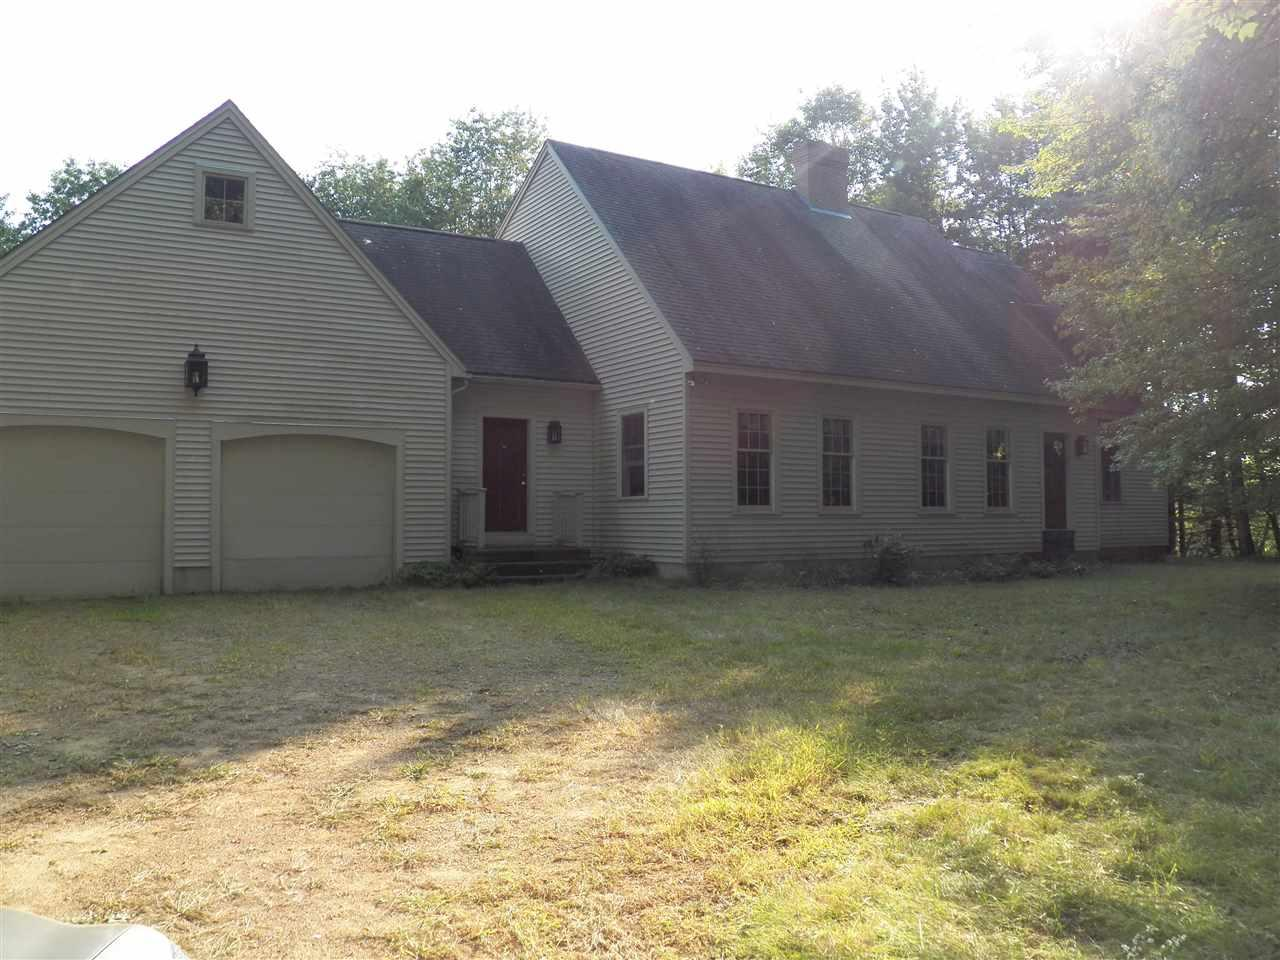 46 Old Center Rd Deerfield Nh Mls 4659097 Better Homes And Gardens Real Estate